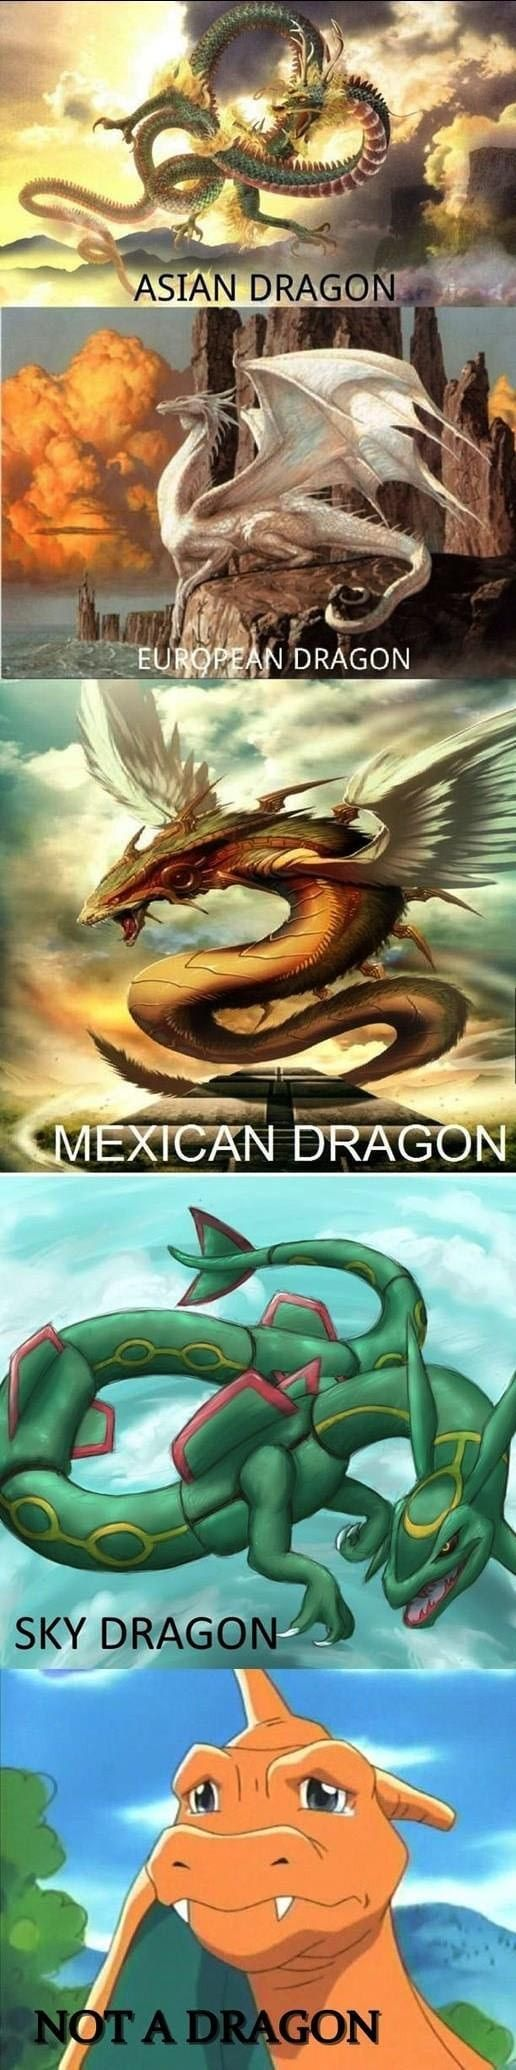 Settling the Dragon Debate once and for all.